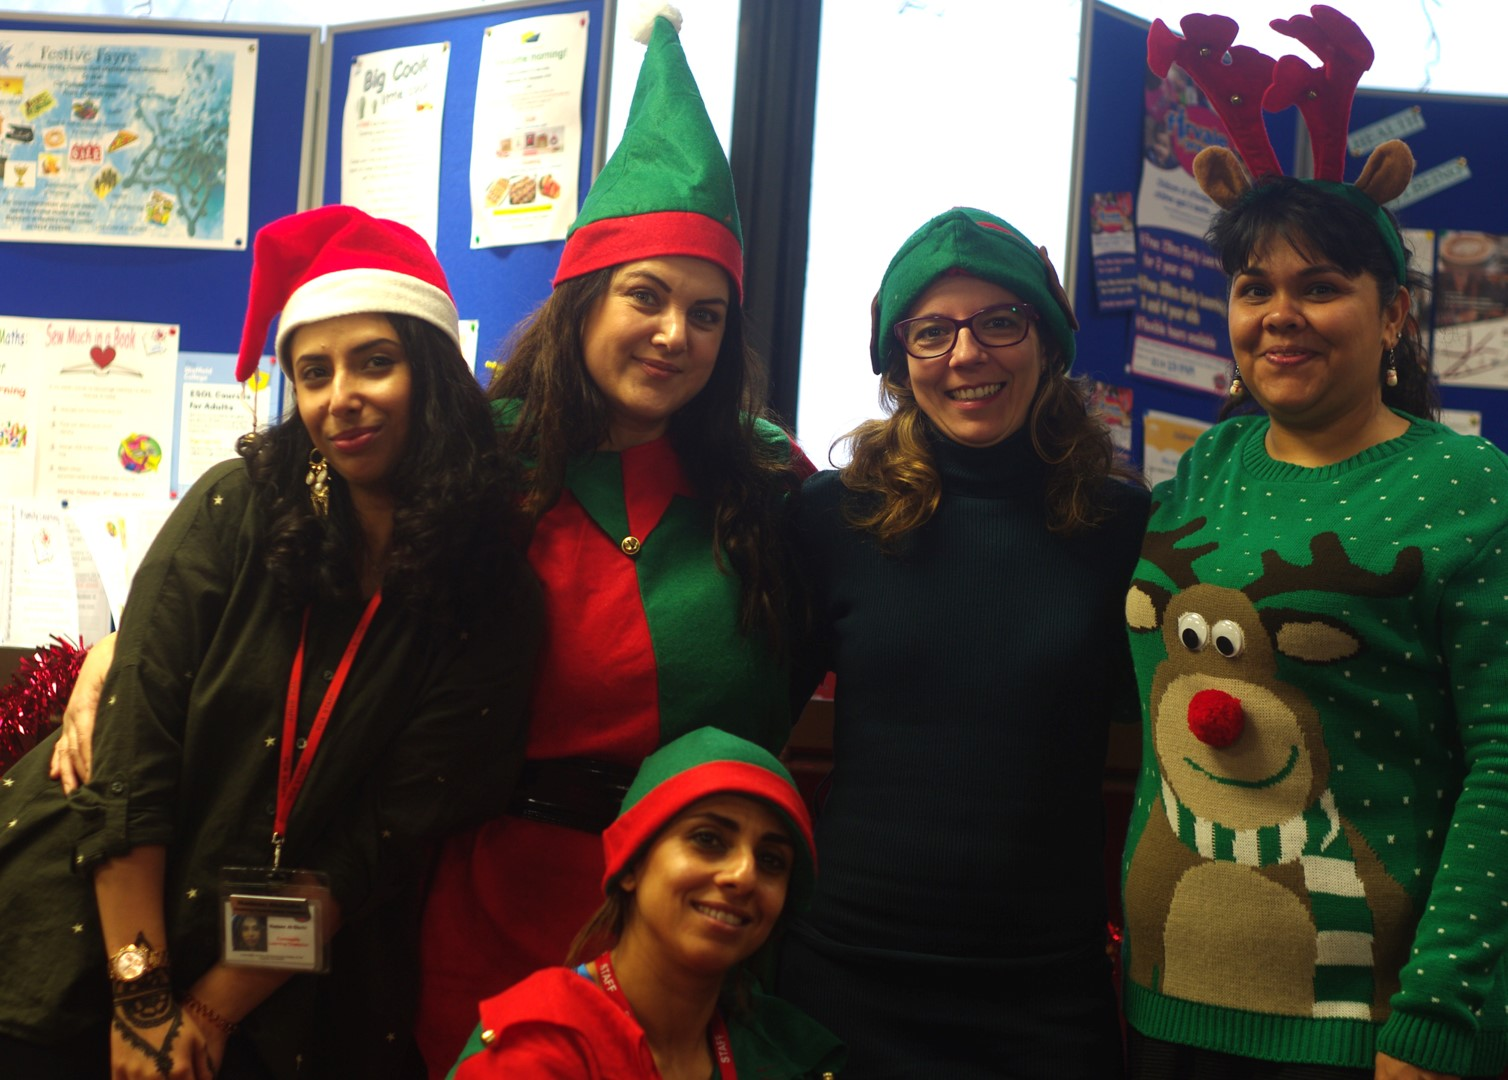 Usha Blackham and other volunteers at the Aspiring Communities Together Winter Fair.